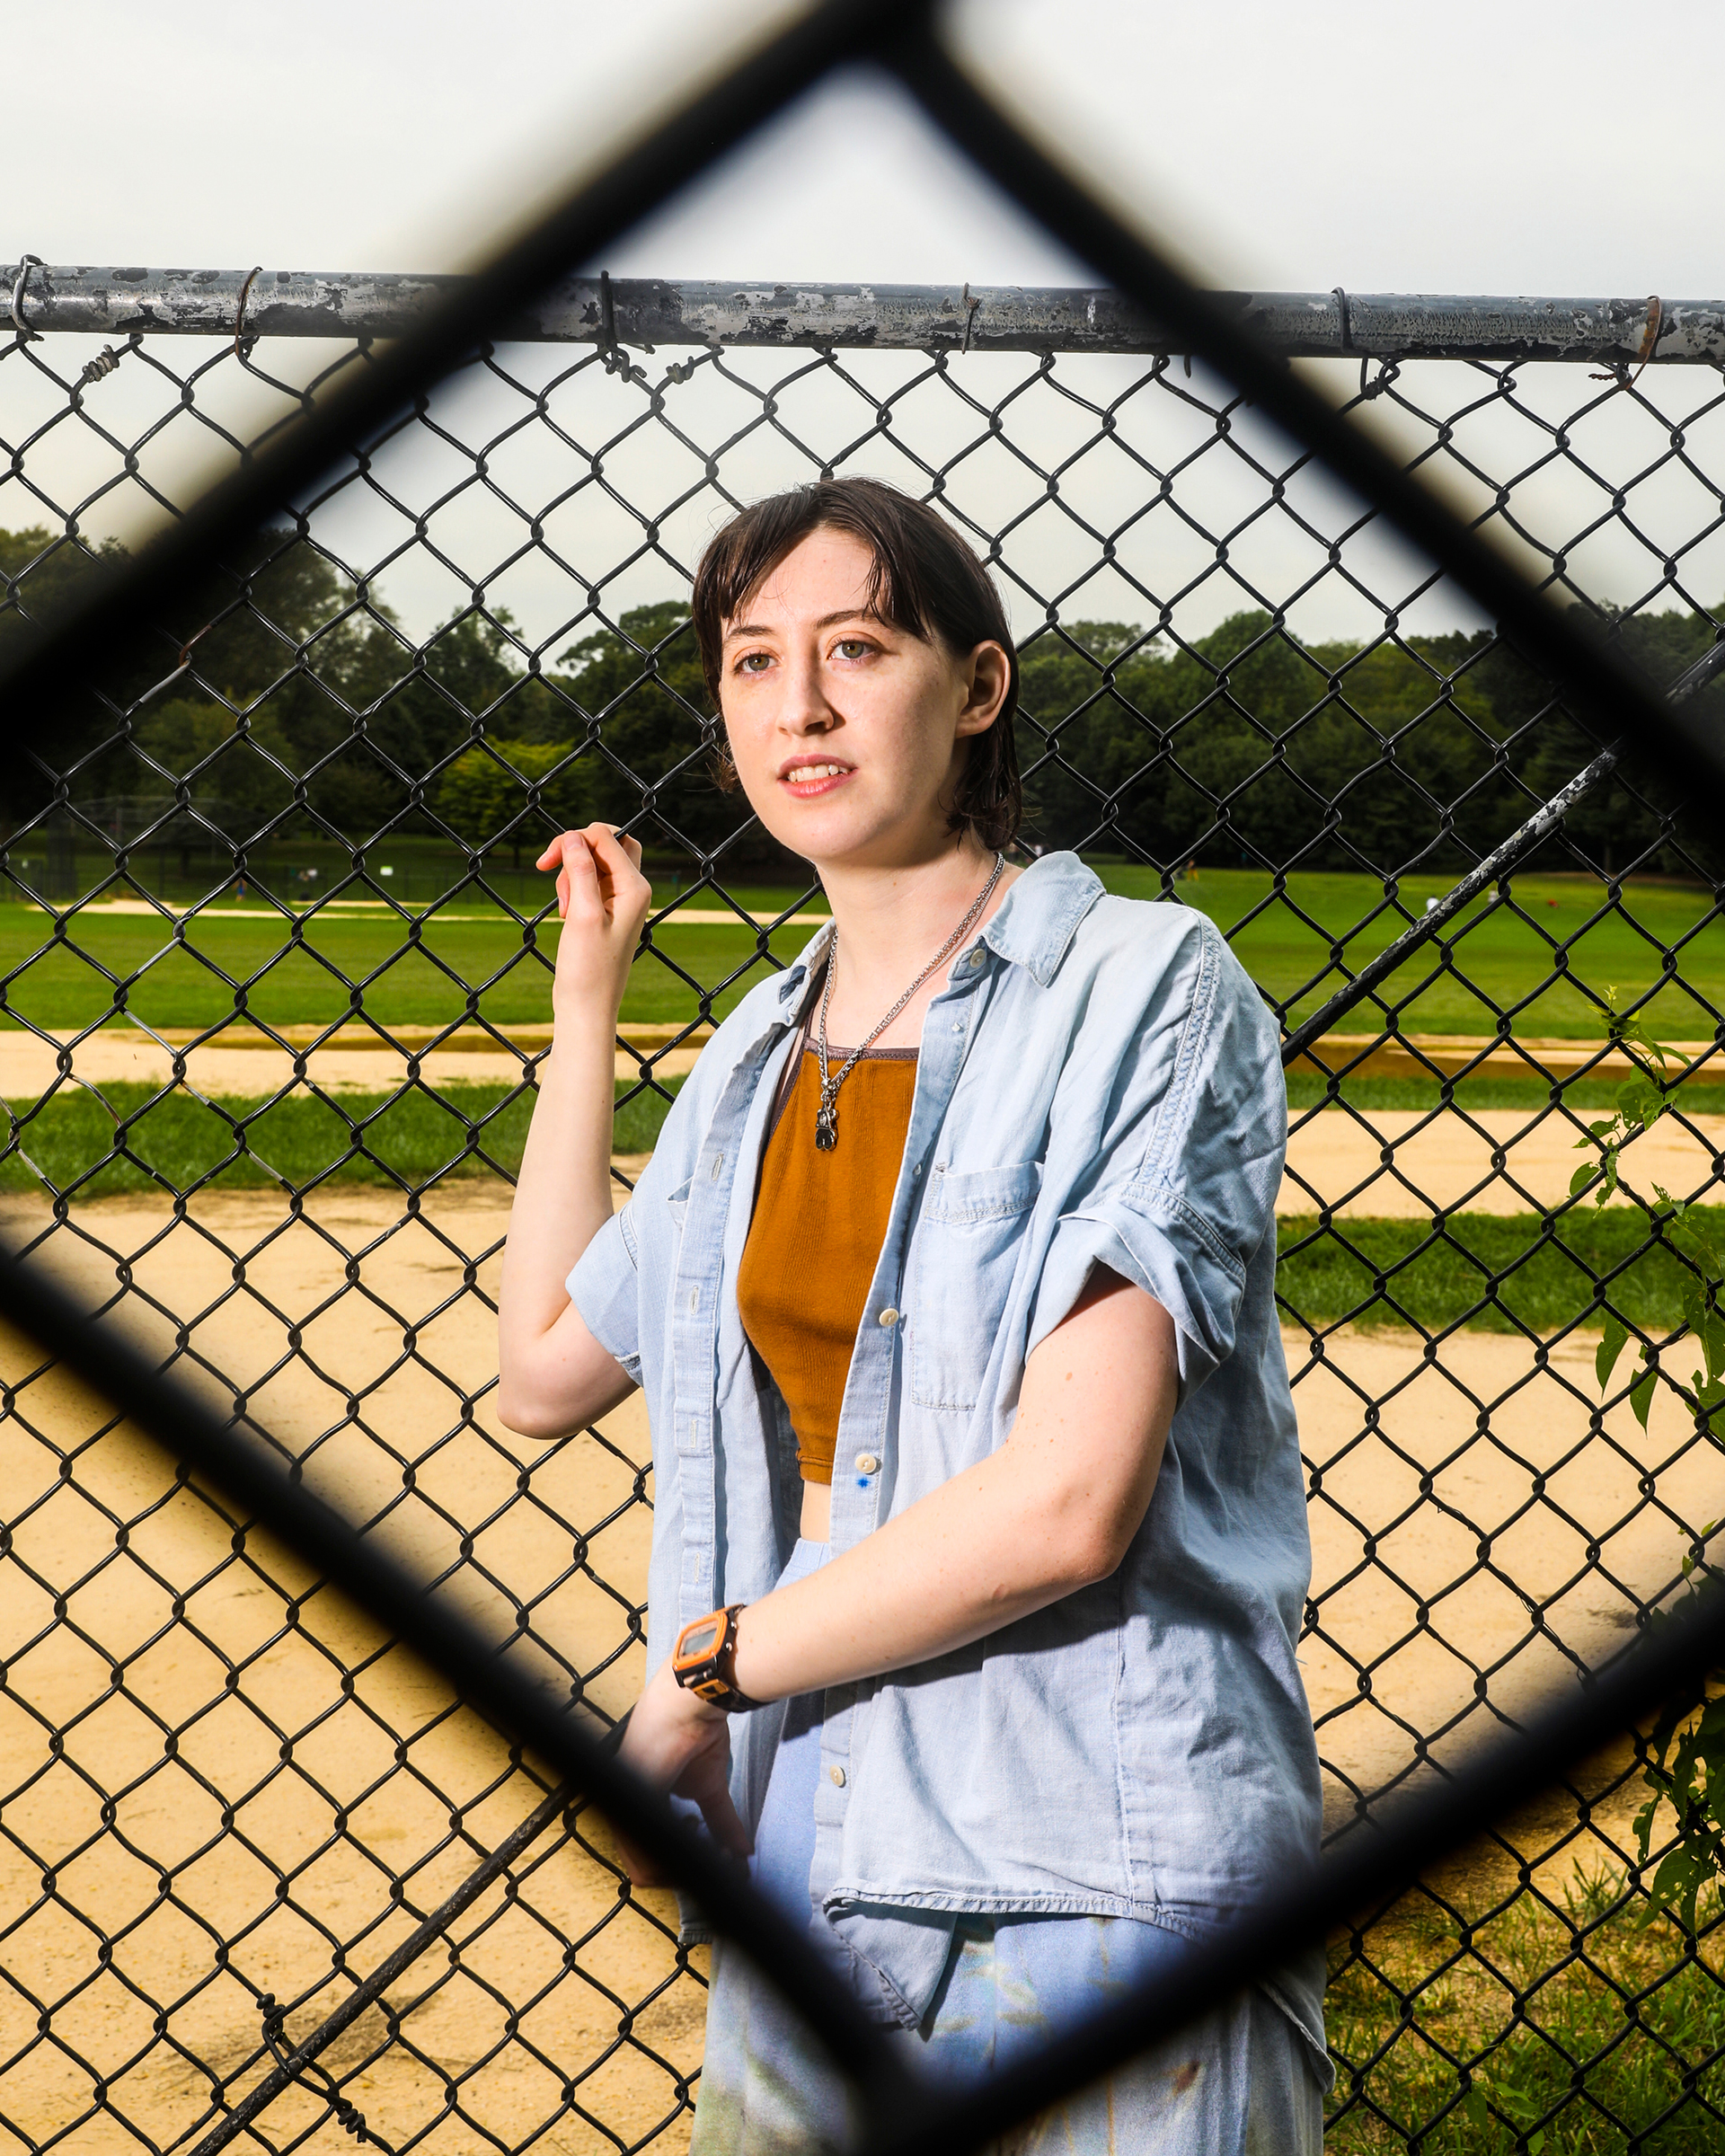 Frankie Cosmos photographed by Krista Schlueter for Rolling Stone